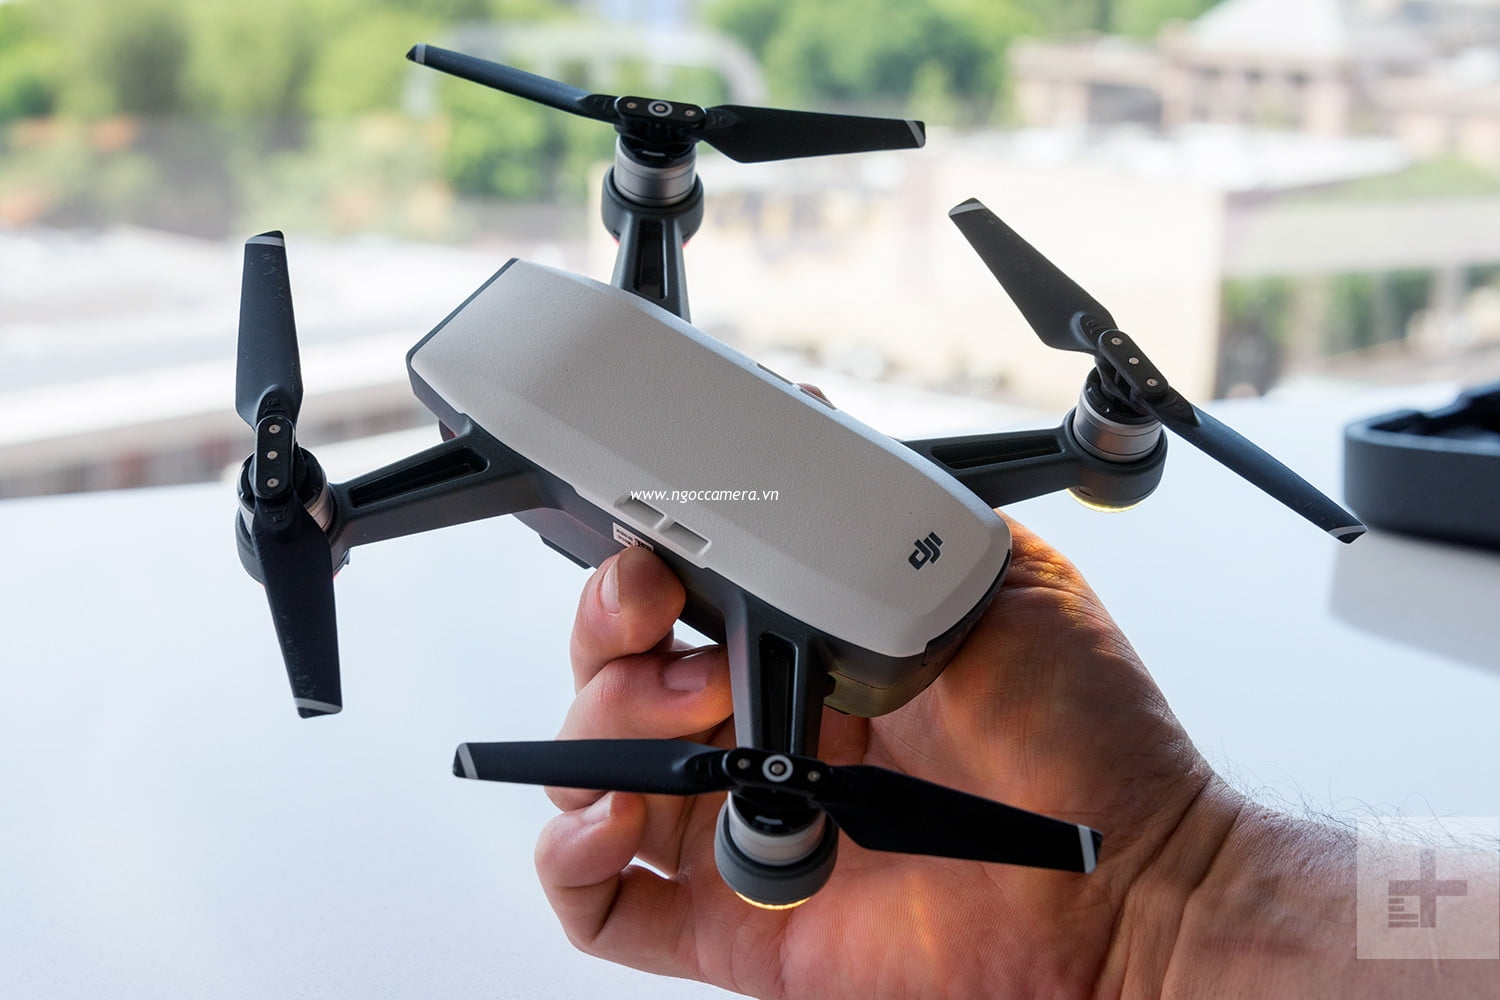 dji-spark-drone-review-12-1500x1000